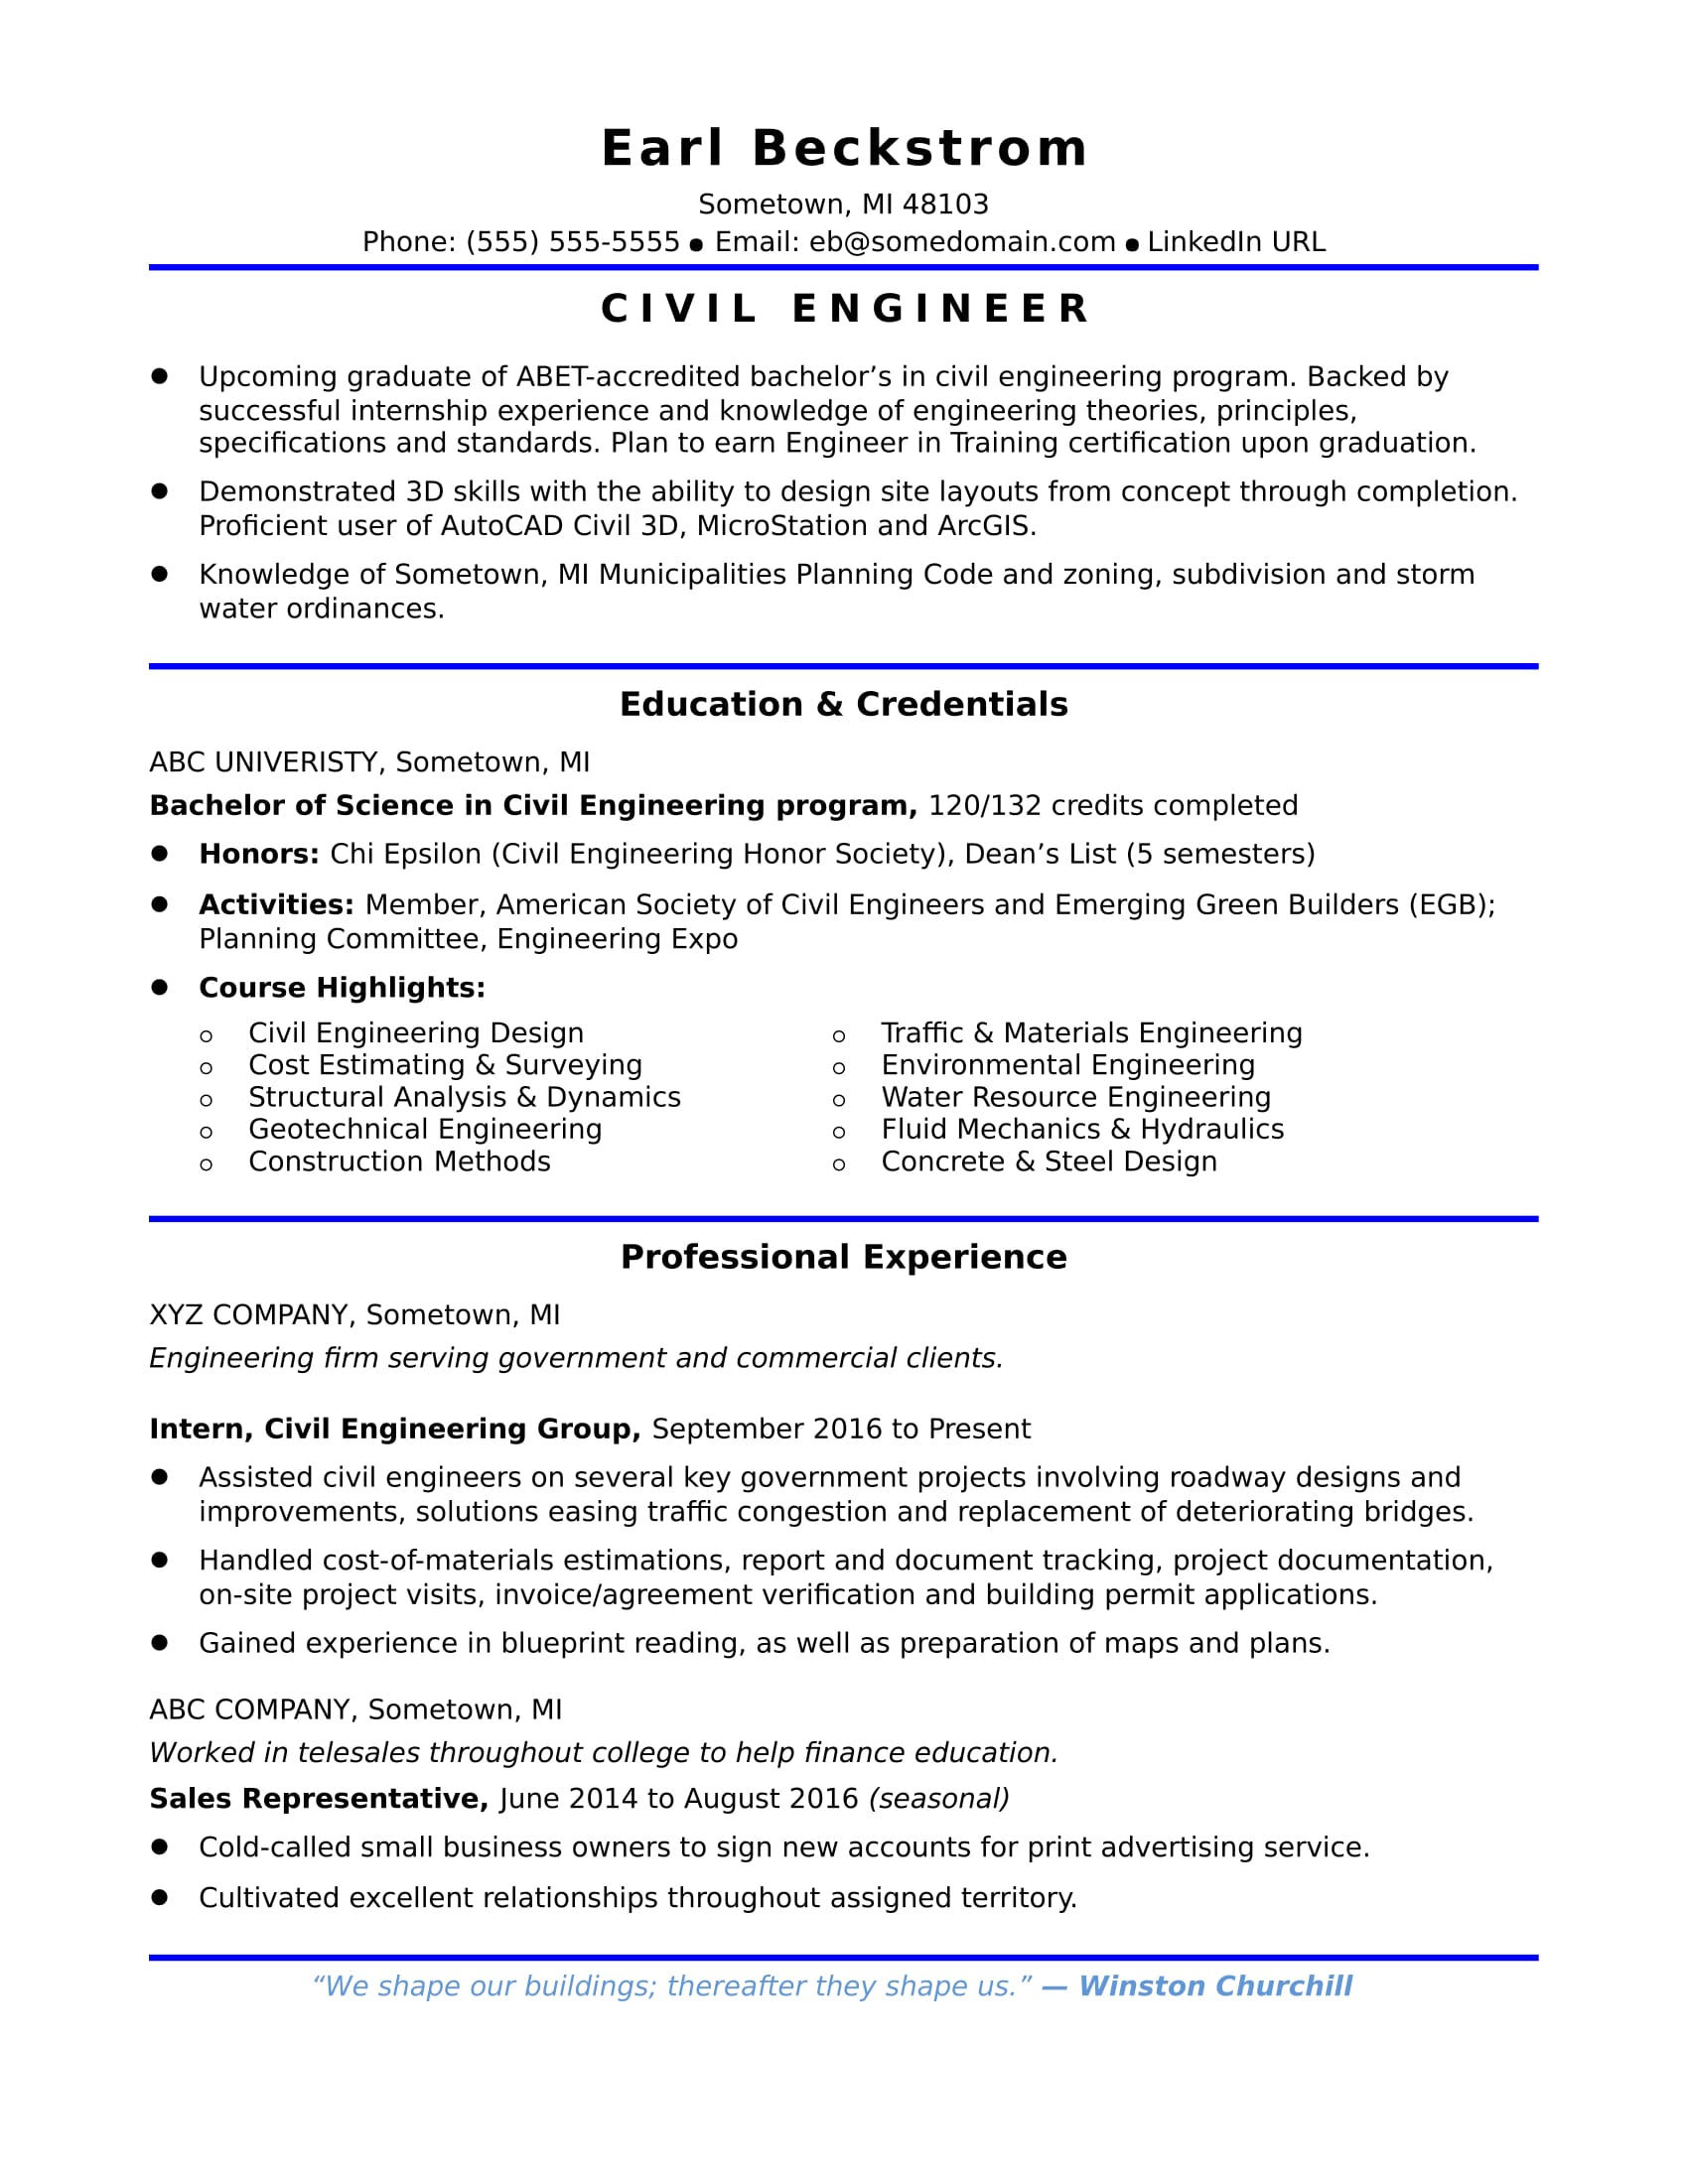 sample resume for an entry level civil engineer monster ojt electrical engineering Resume Sample Resume For Ojt Electrical Engineering Students